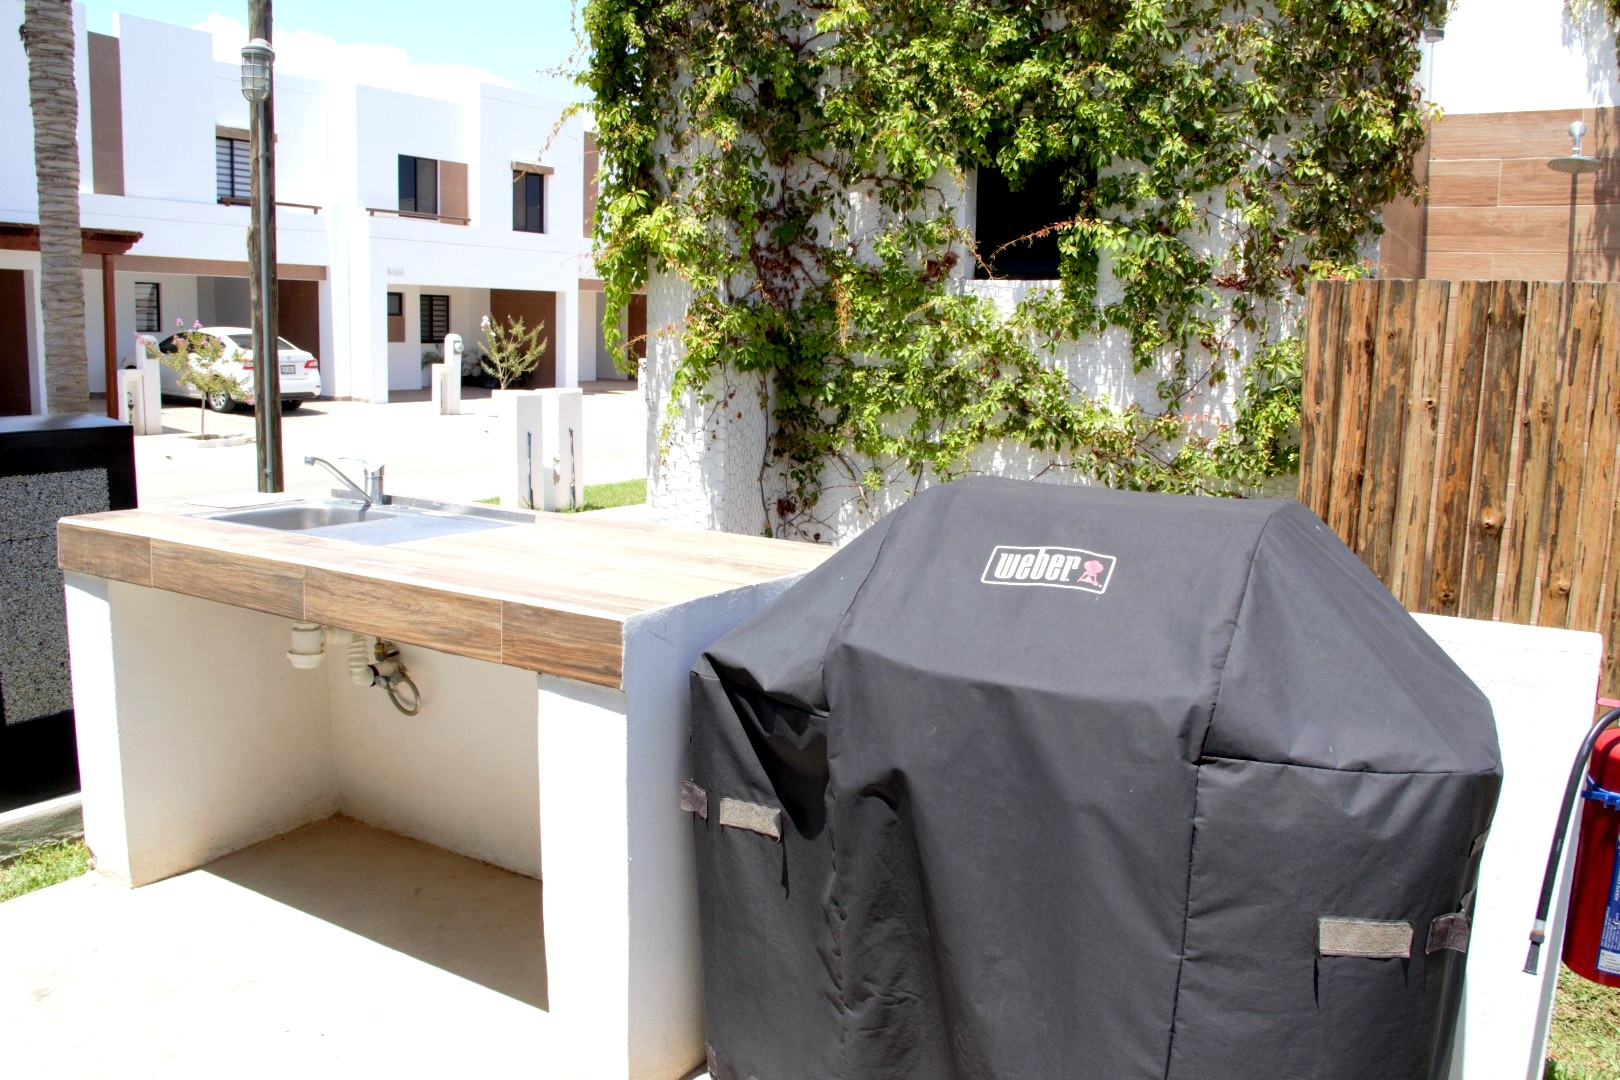 There are 2 grills that can be reserved and used.